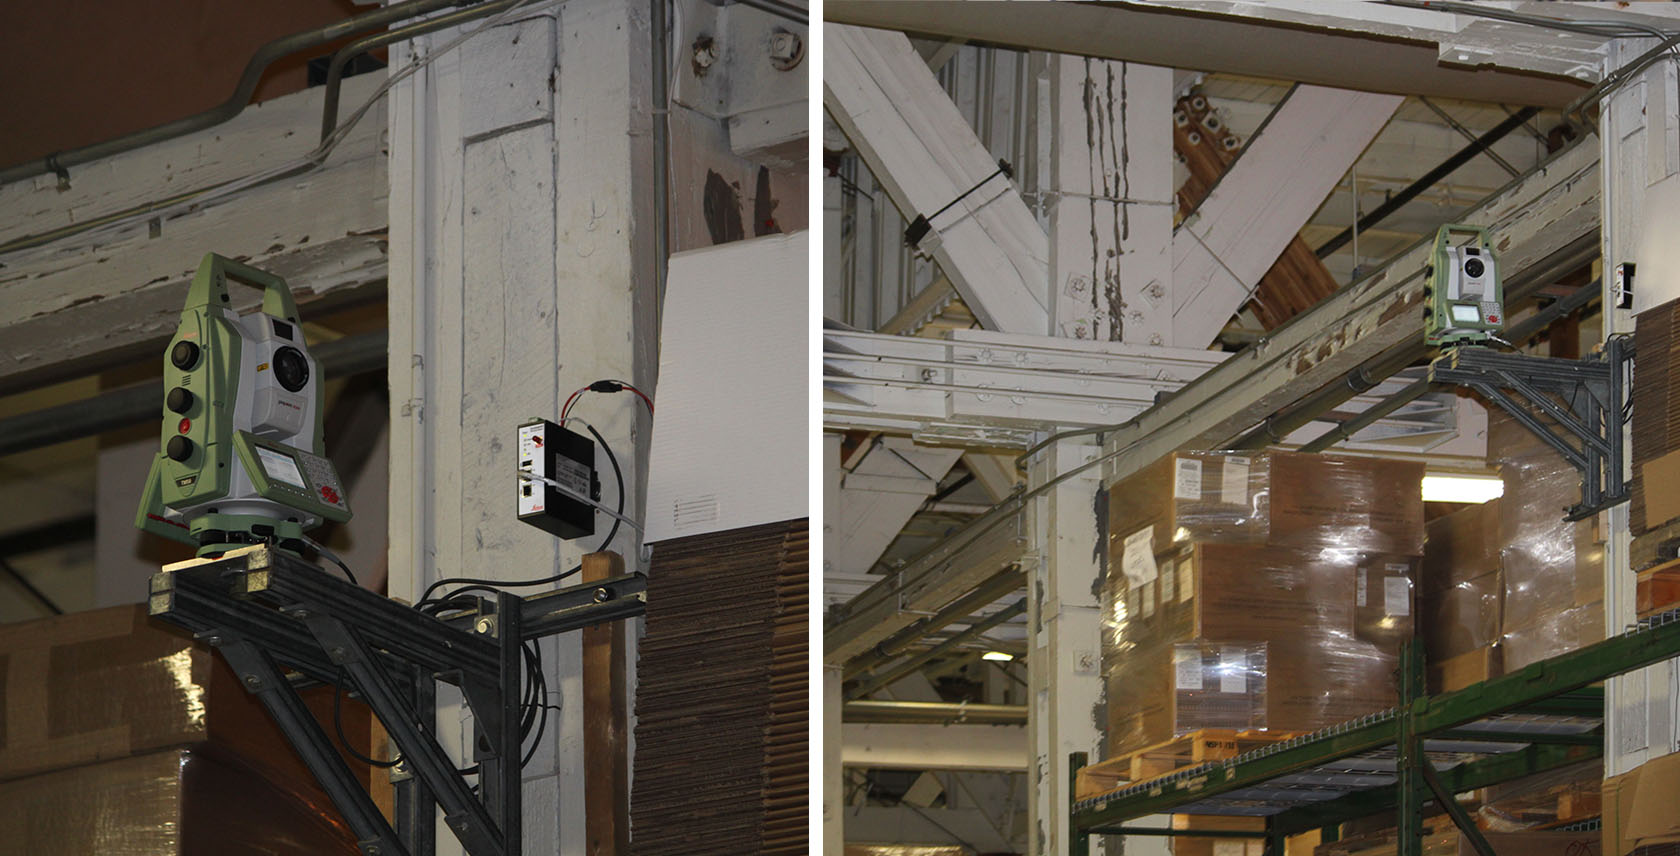 Monitoring the Structural Health of 80-year-old Royal Canadian Air Force Warren Truss Hangars with Leica Geosystems equipment - 3